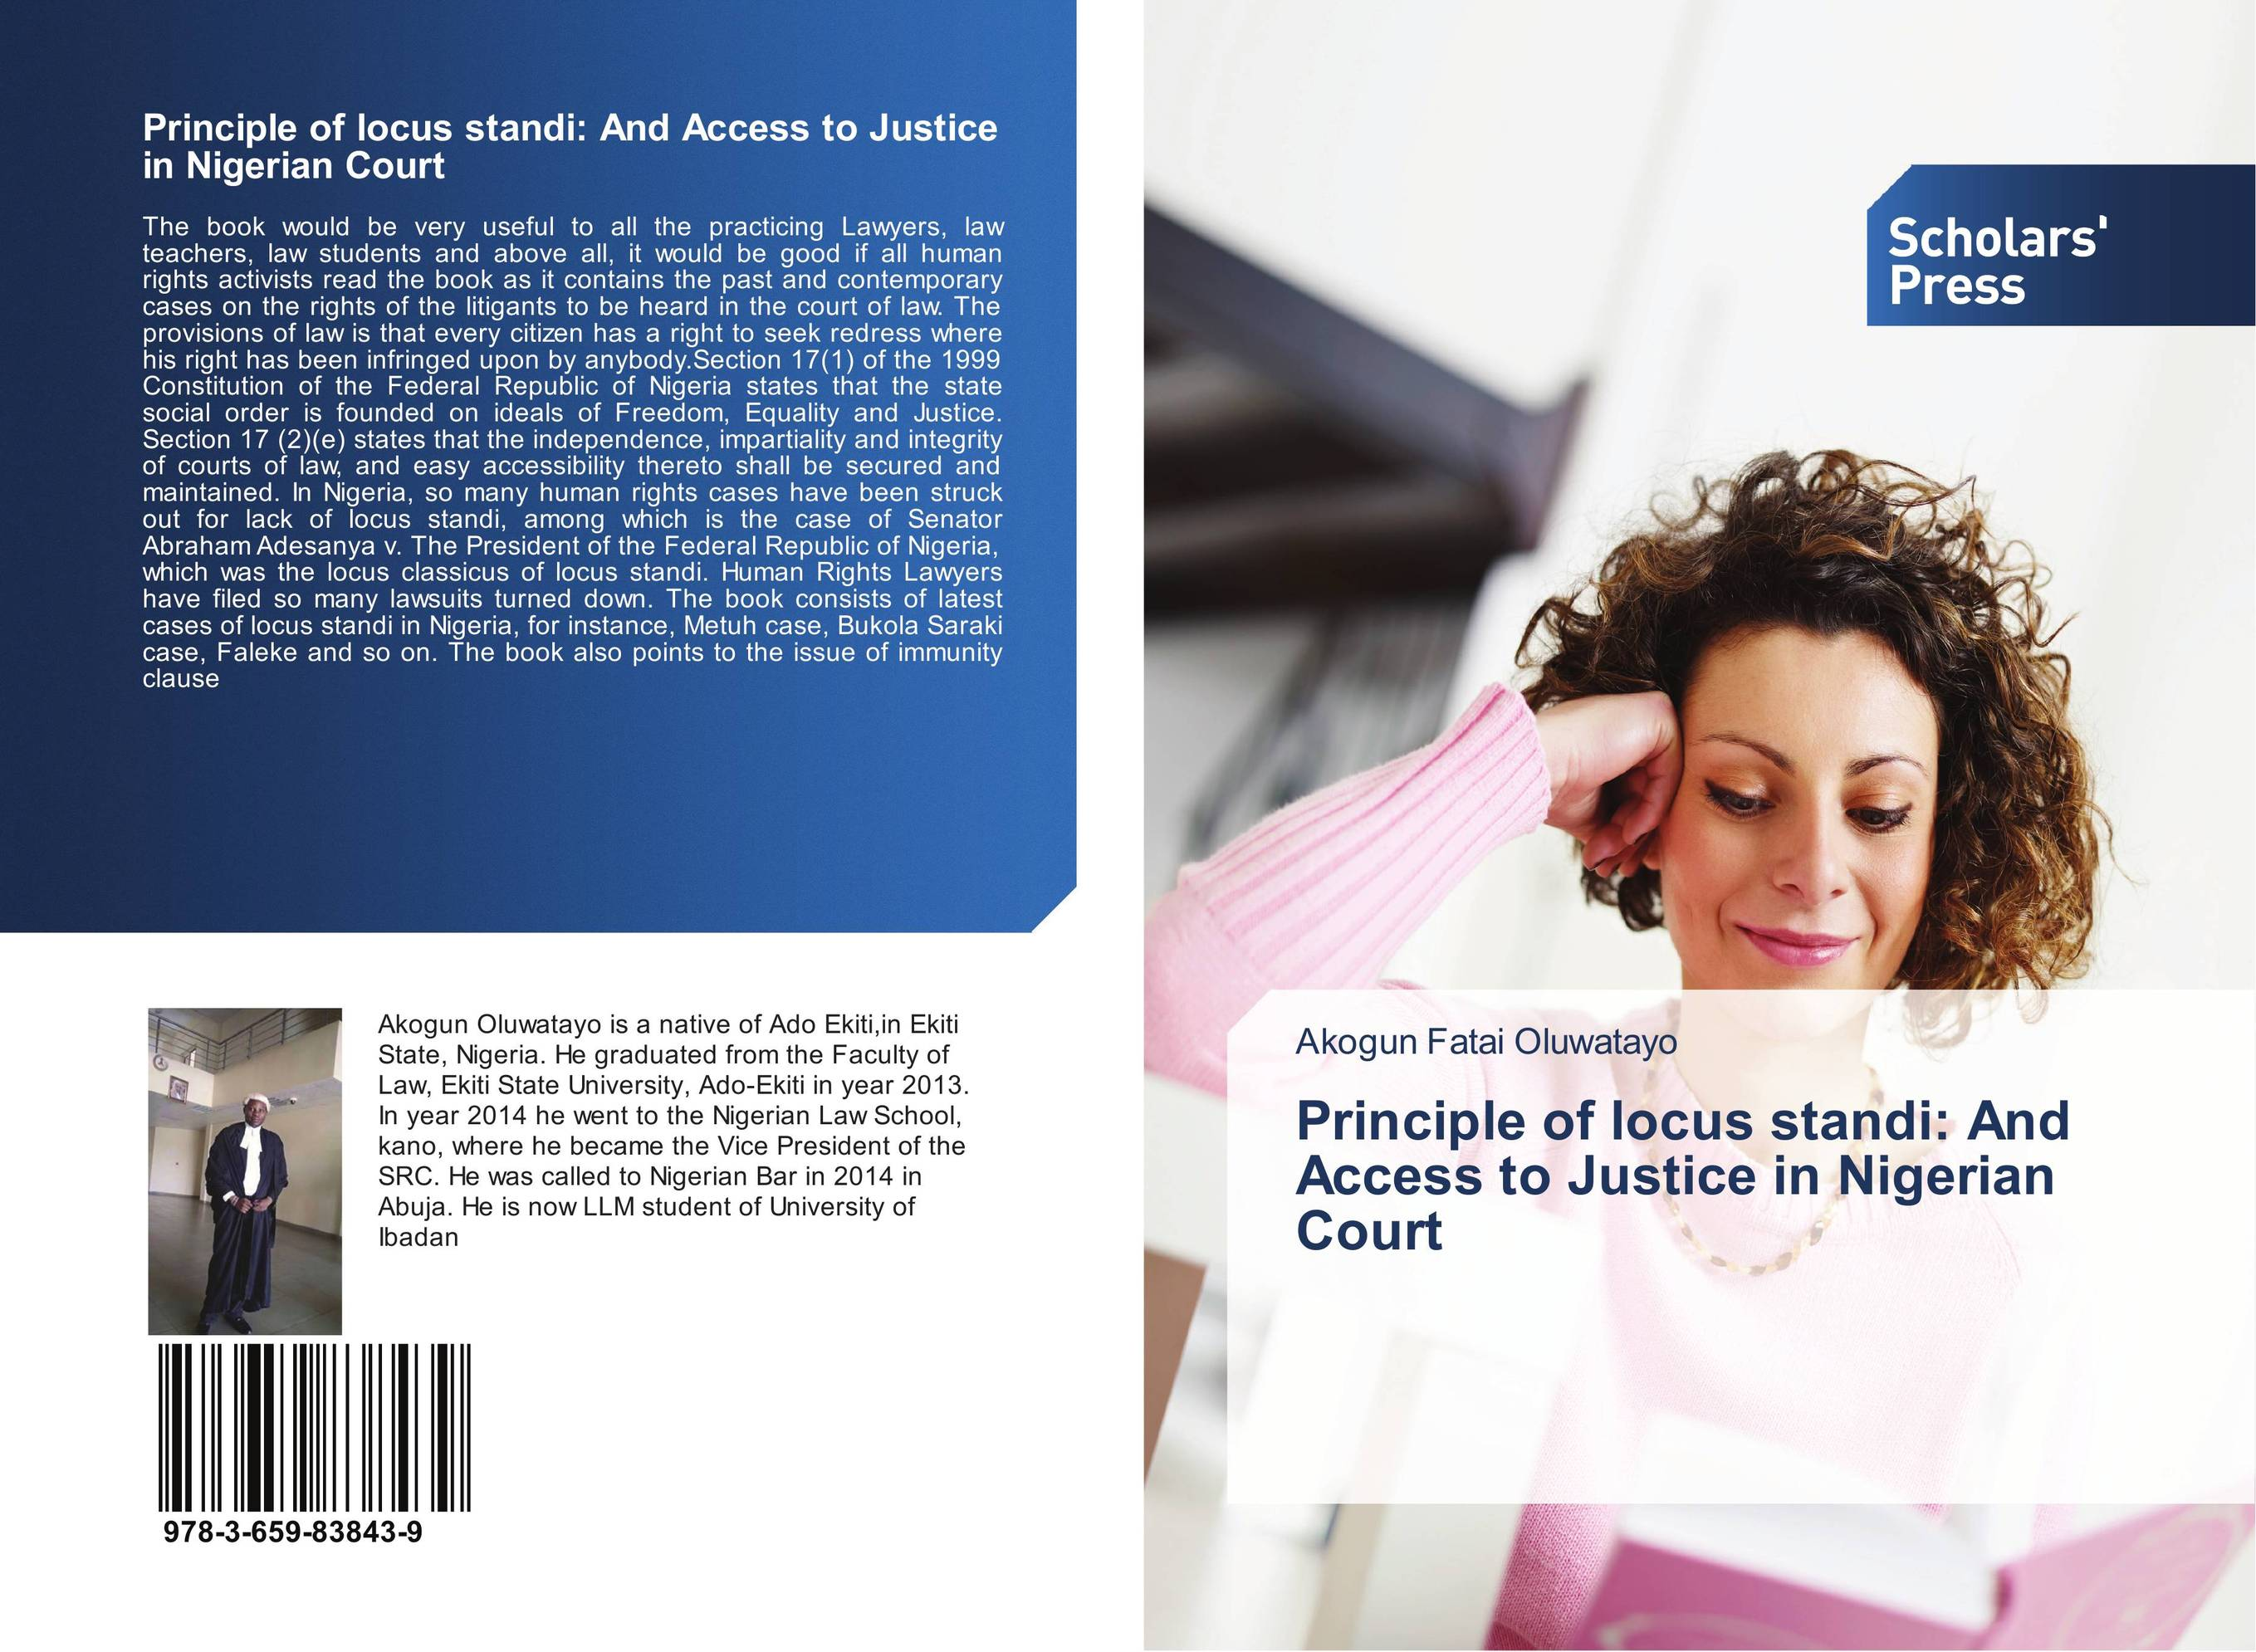 Principle of locus standi: And Access to Justice in Nigerian Court tv антенну locus для дачи в москва